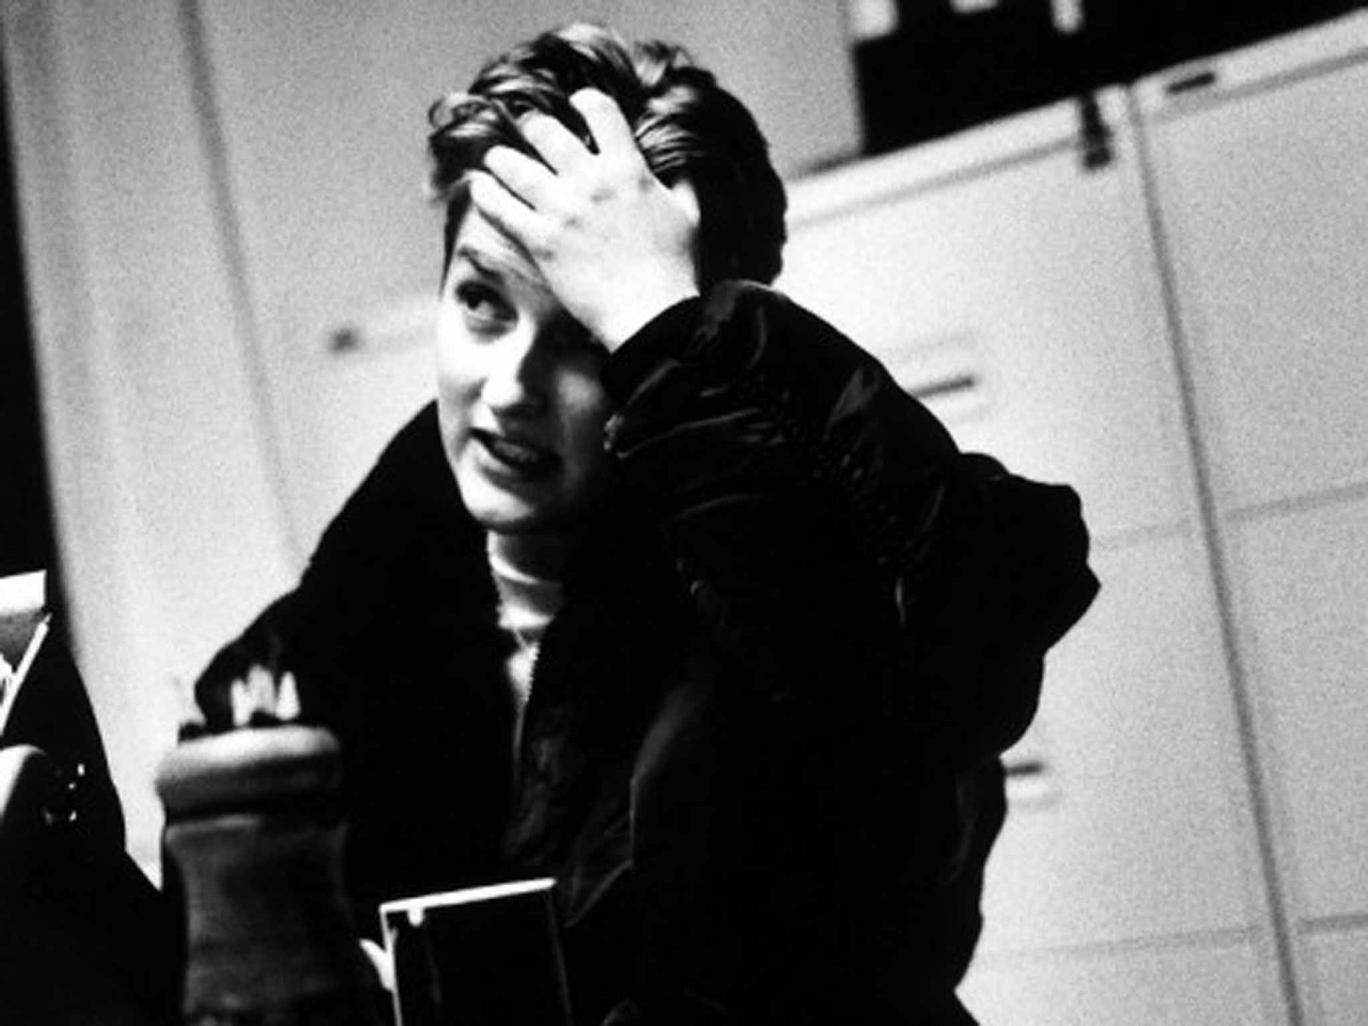 Sarah Kane (foto: Independent - http://www.independent.co.uk/arts-entertainment/theatre-dance/features/sarah-kane-why-the-iconic-playwright-who-committed-suicide-is-as-controversial-as-ever-10003985.html)